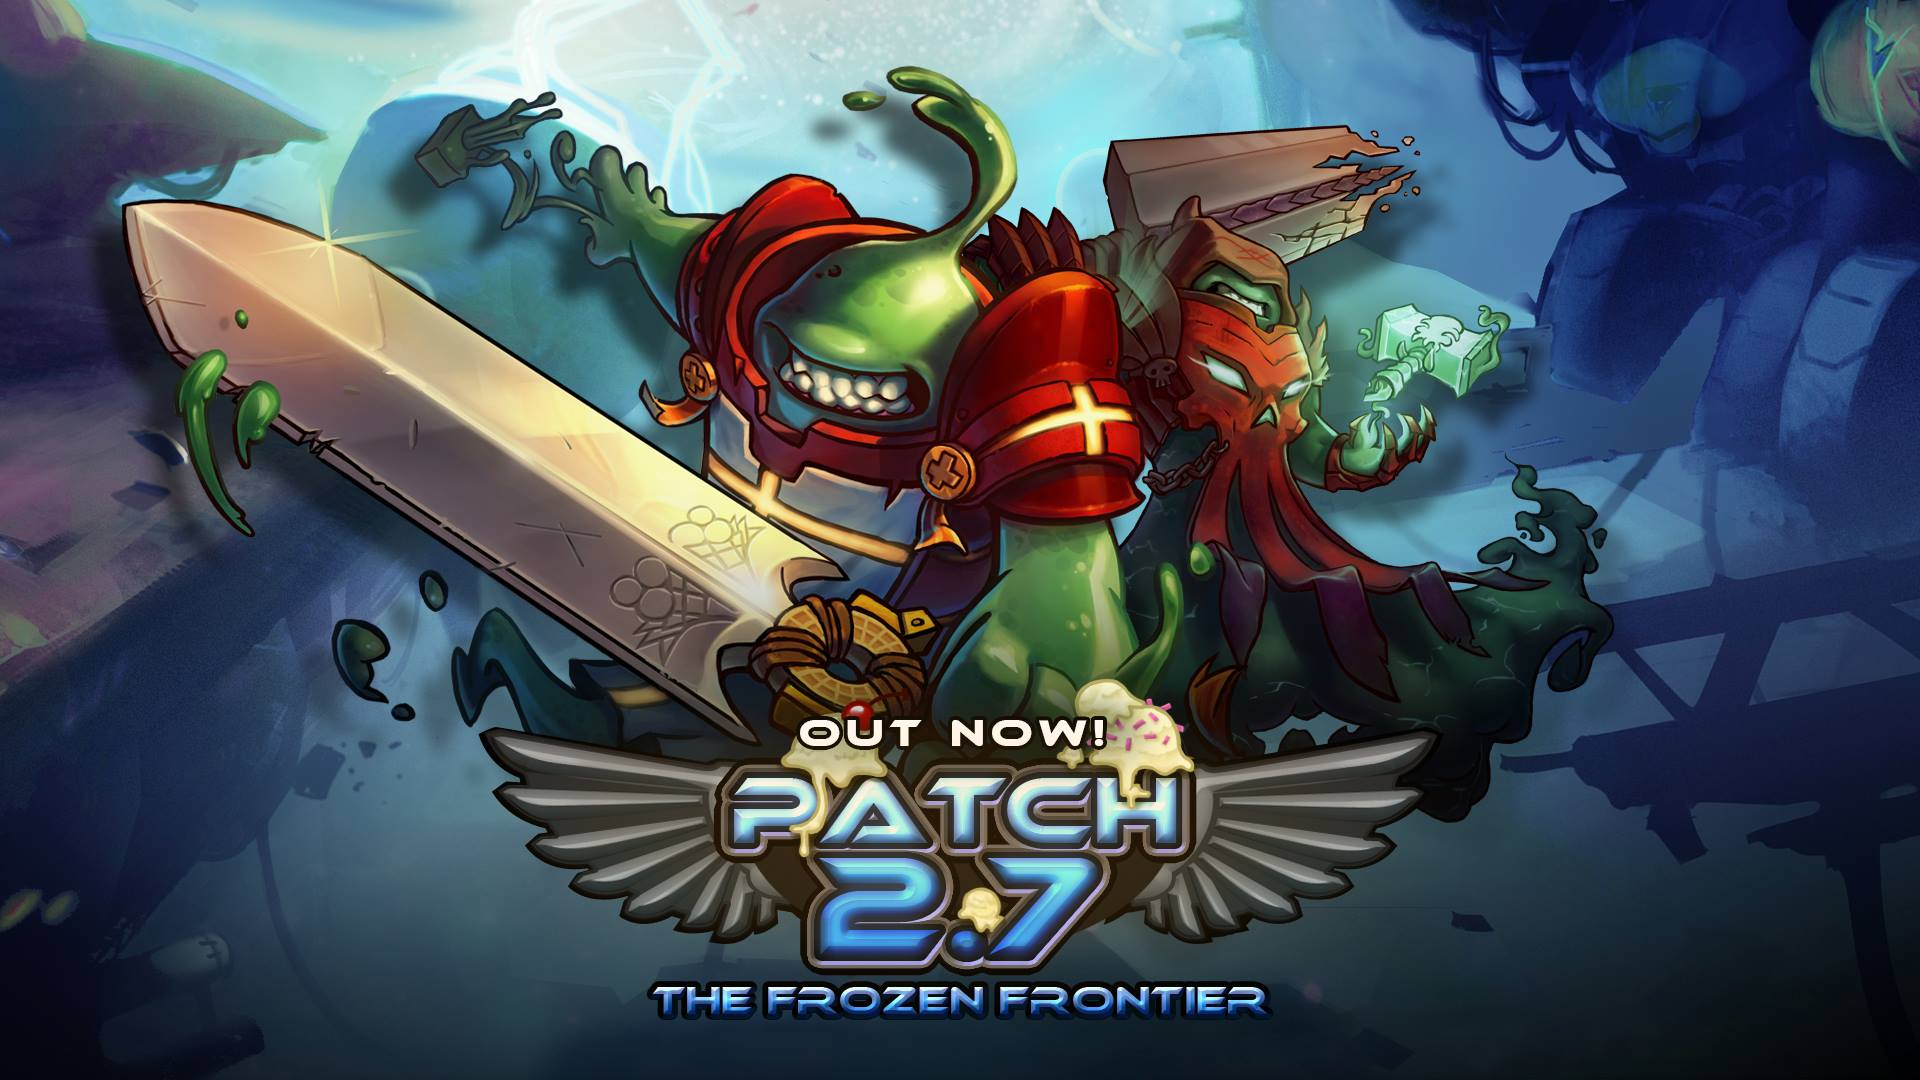 Patch 2.7 Is live!